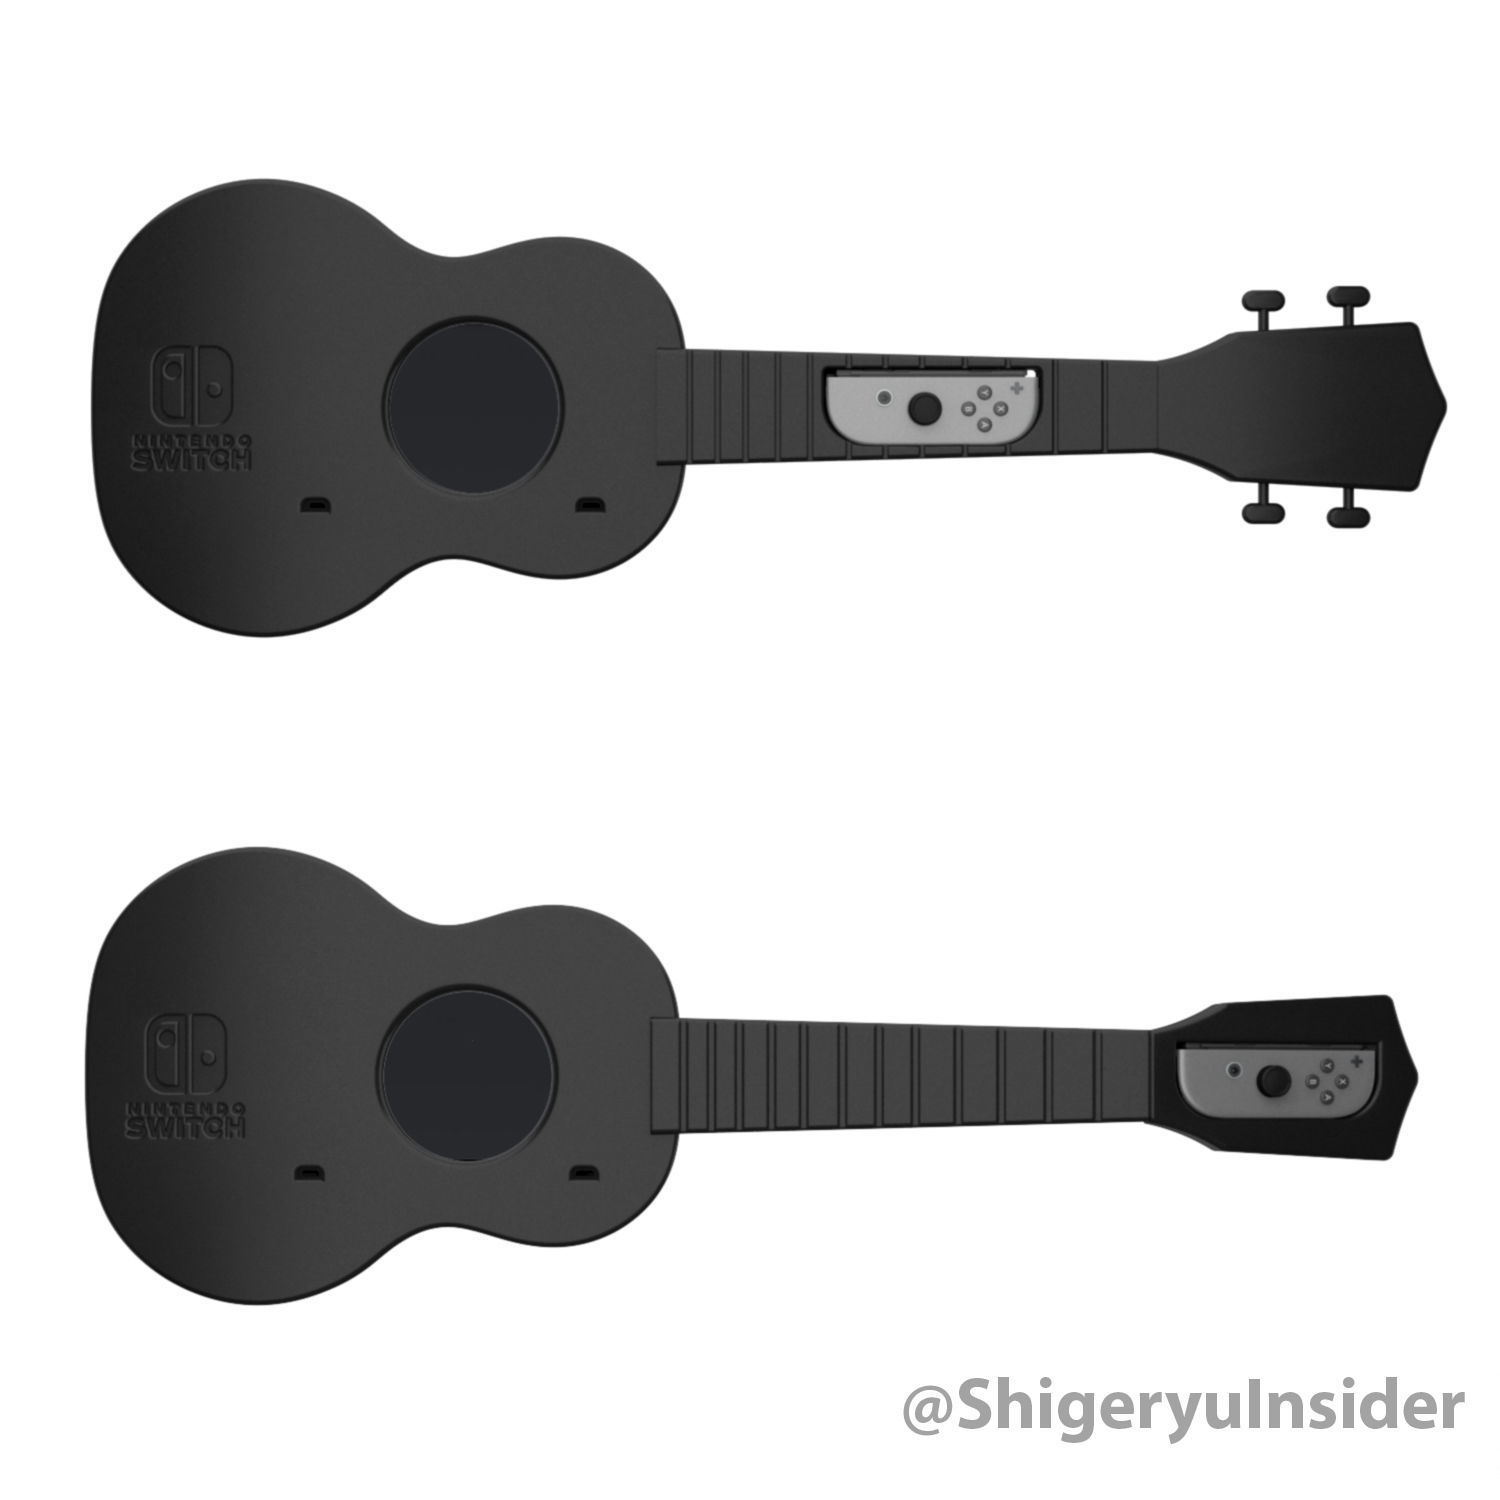 photo regarding Guitar Printable named Ukulele Guitar for Nintendo substitute 3D Print Design and style